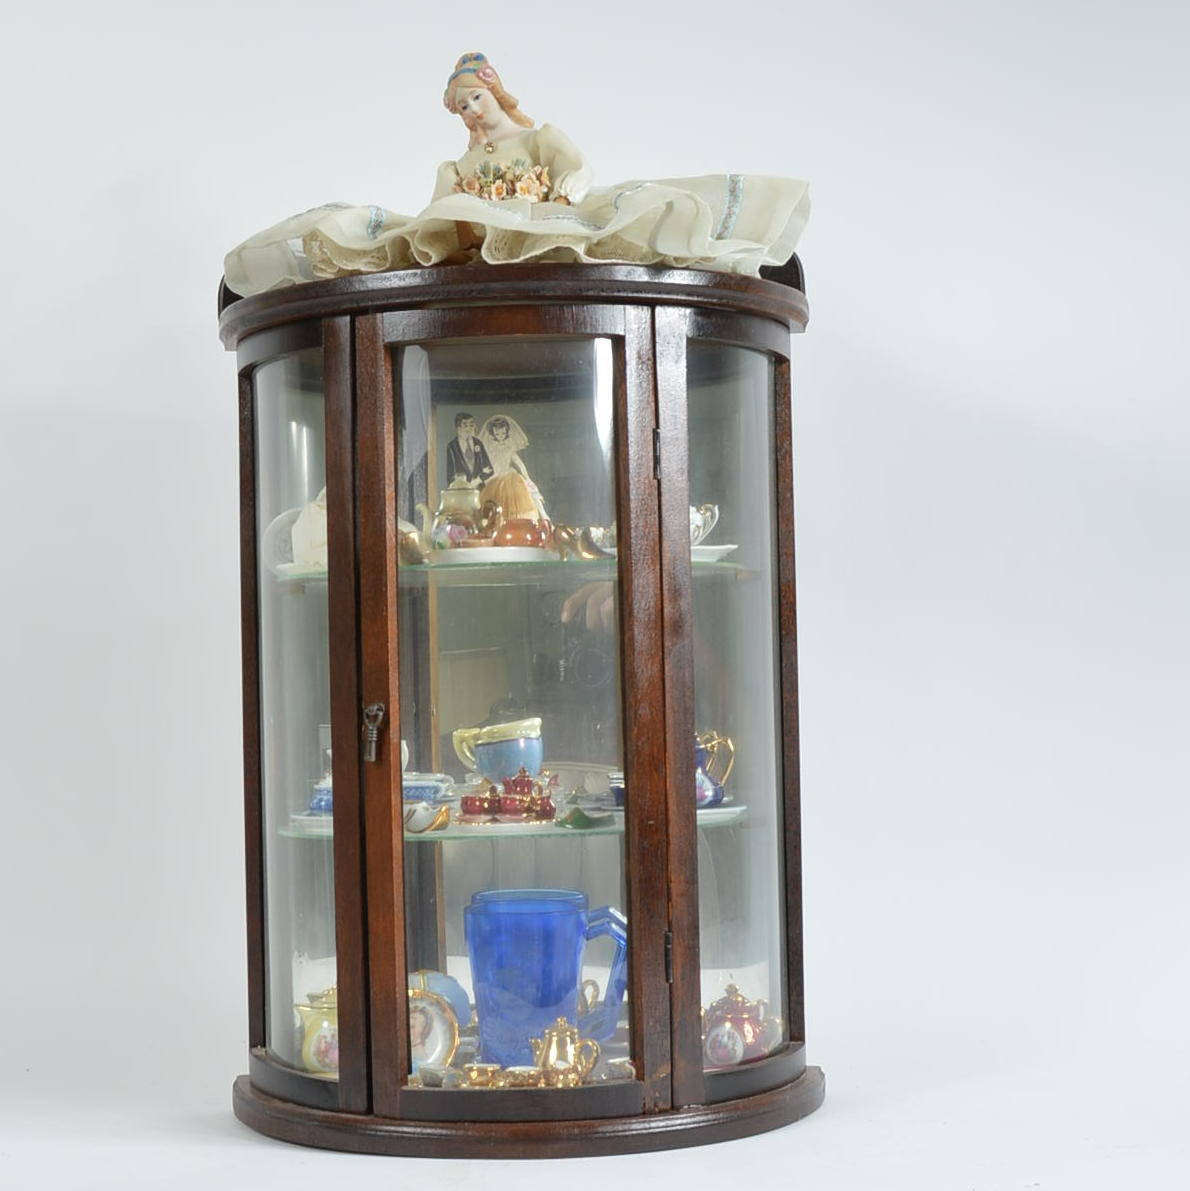 Doll Sized Curio Cabinet with Miniatures